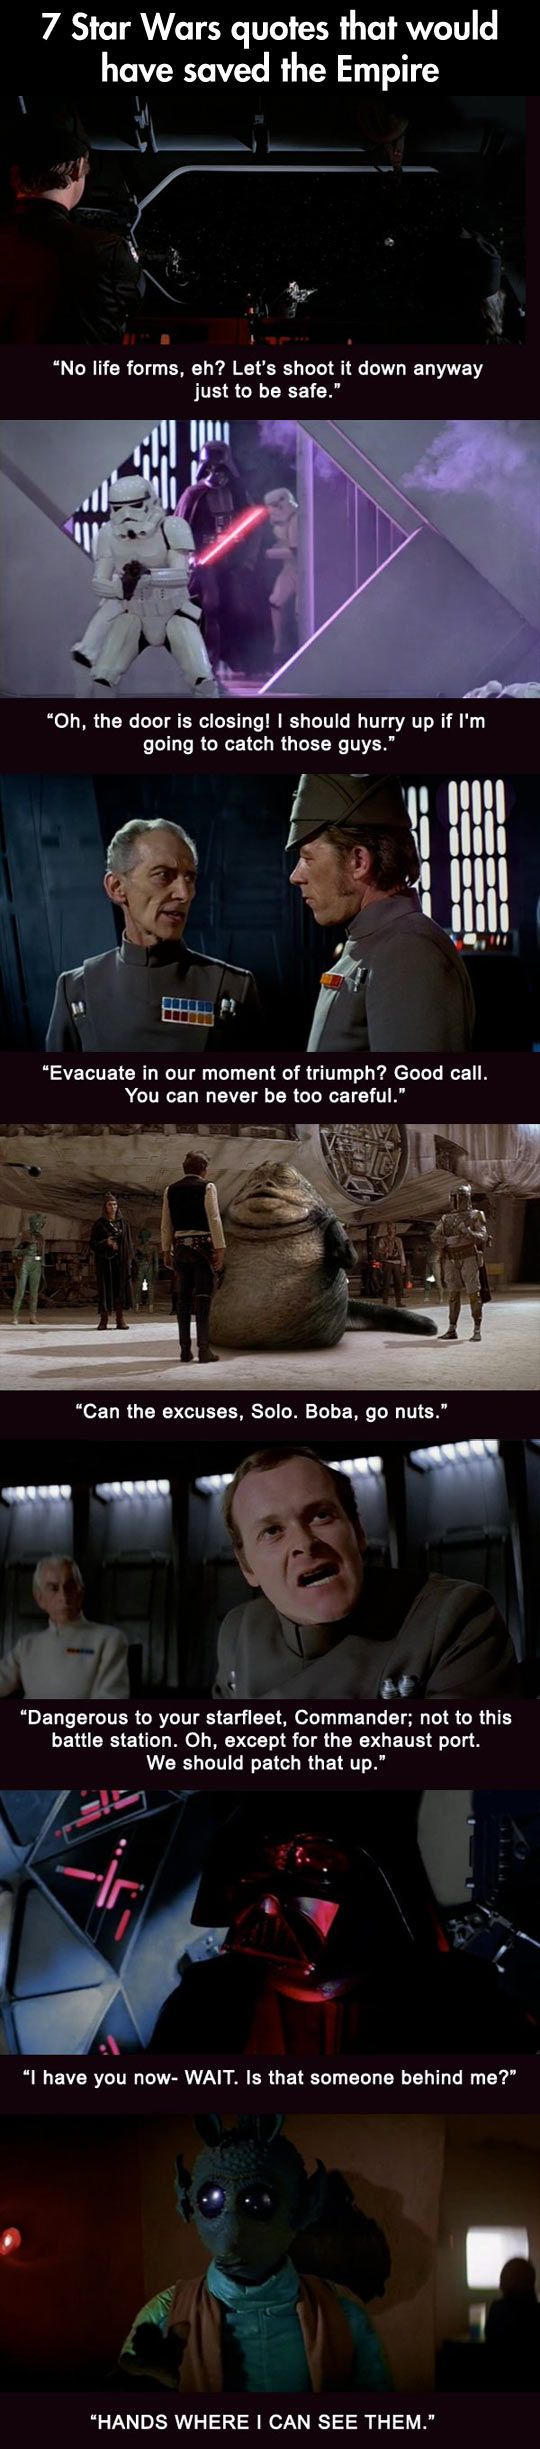 Star Wars Quotes That Would Have Saved The Empire // funny pictures - funny photos - funny images - funny pics - funny quotes - #lol #humor #funnypictures